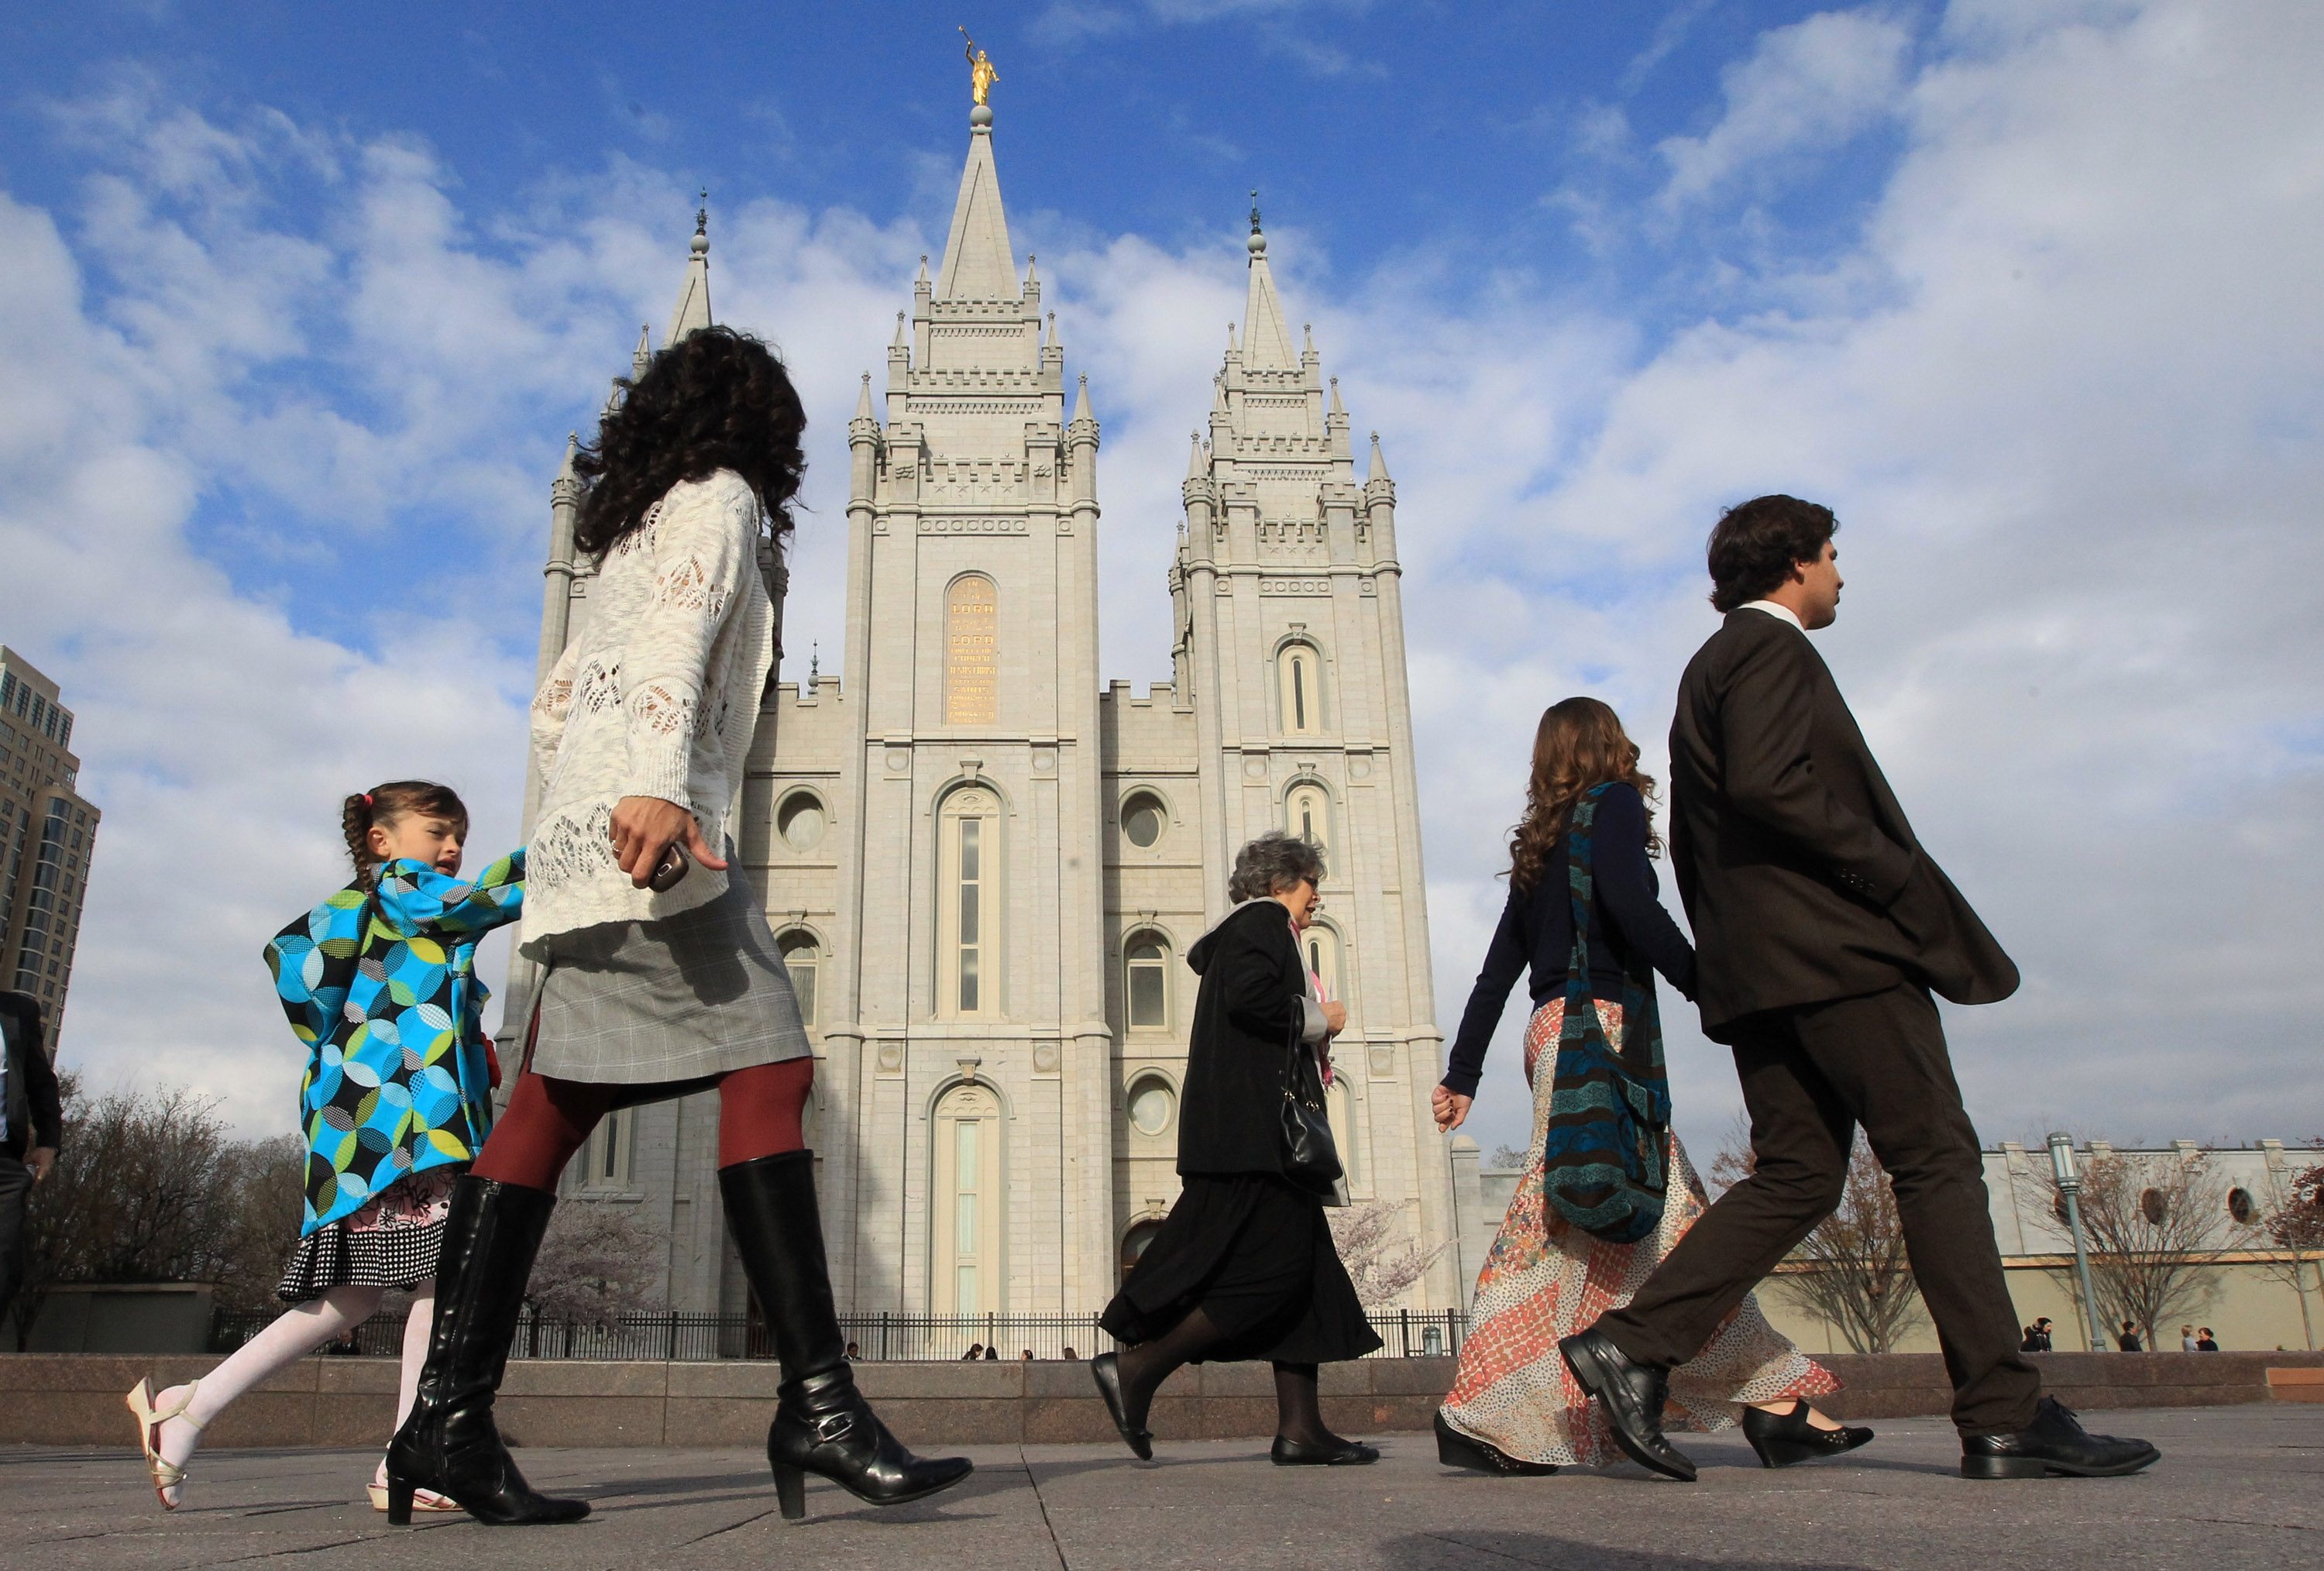 In January 2019 the First Presidency of The Church of Jesus Christ of Latter-day Saints released a statement on temples.